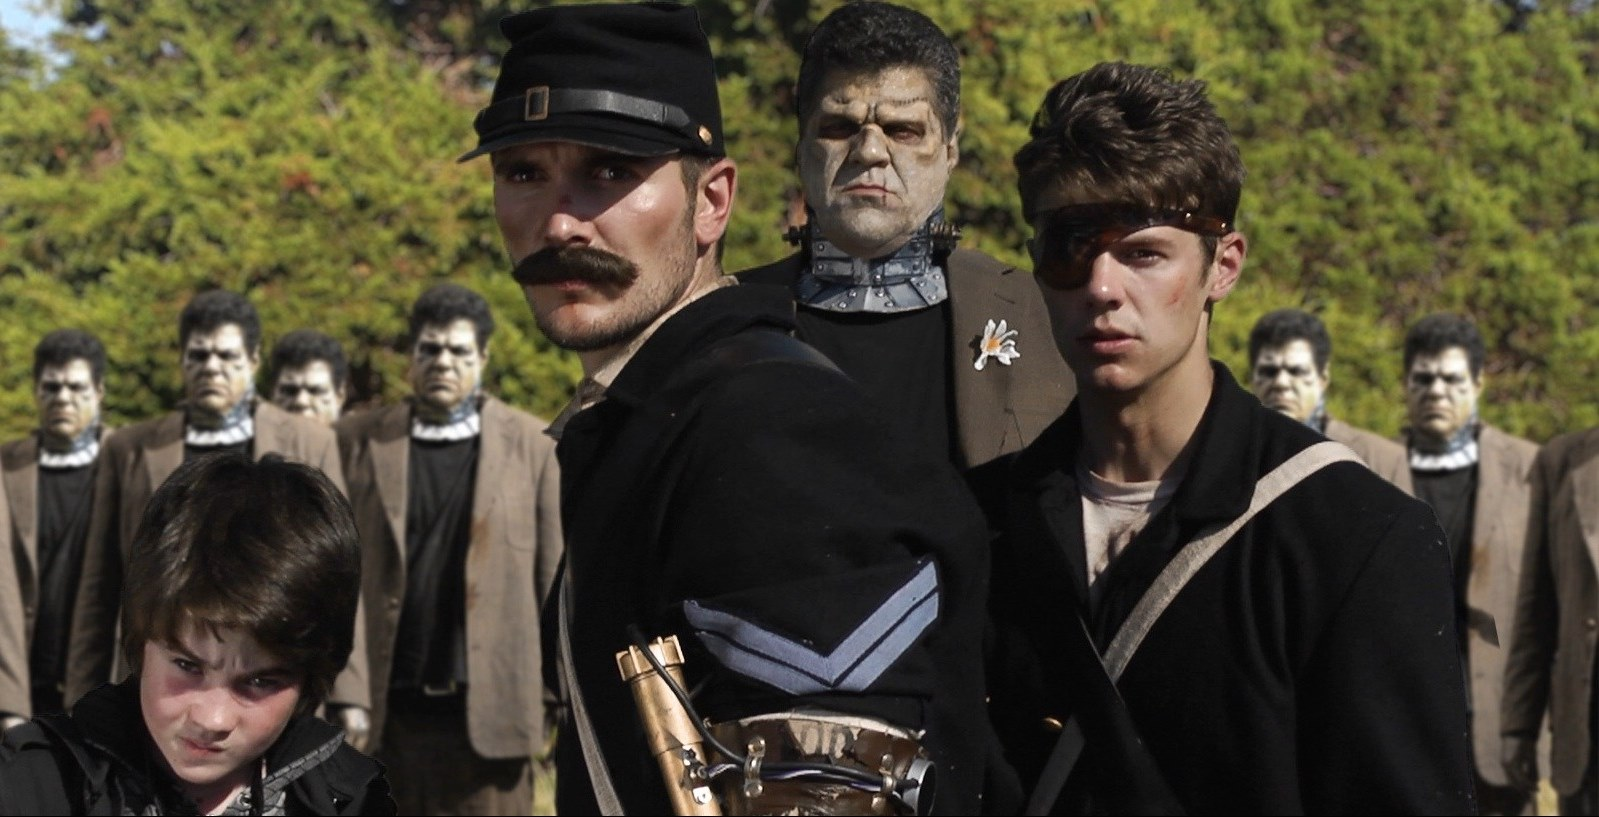 (l to r) Igor (Christian Bellgardt), Corporal Solomon Jones (Rett Terrell), the Frankenstein Monster (Eric Gesecus) and time traveler Alan Jones (Jordan Farris) in Army of Frankensteins (2014)